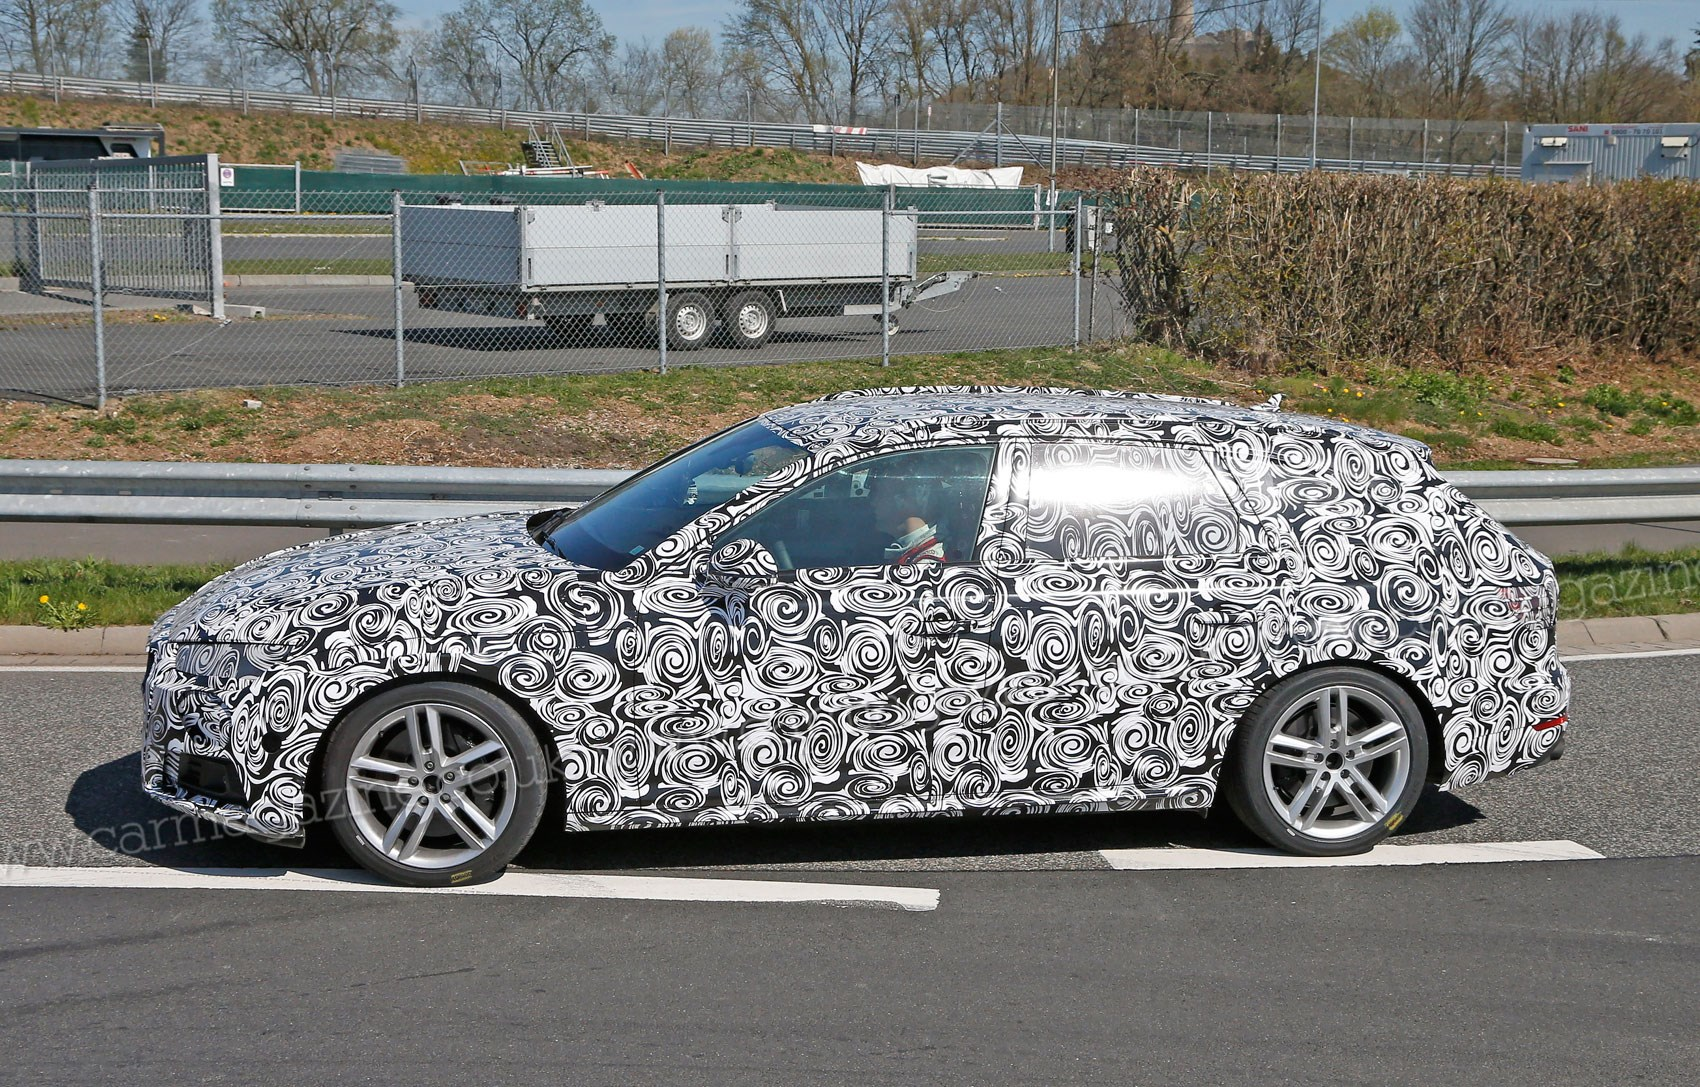 Audi S4 Avant (2016) spyshots: 340bhp for future fast estate | CAR